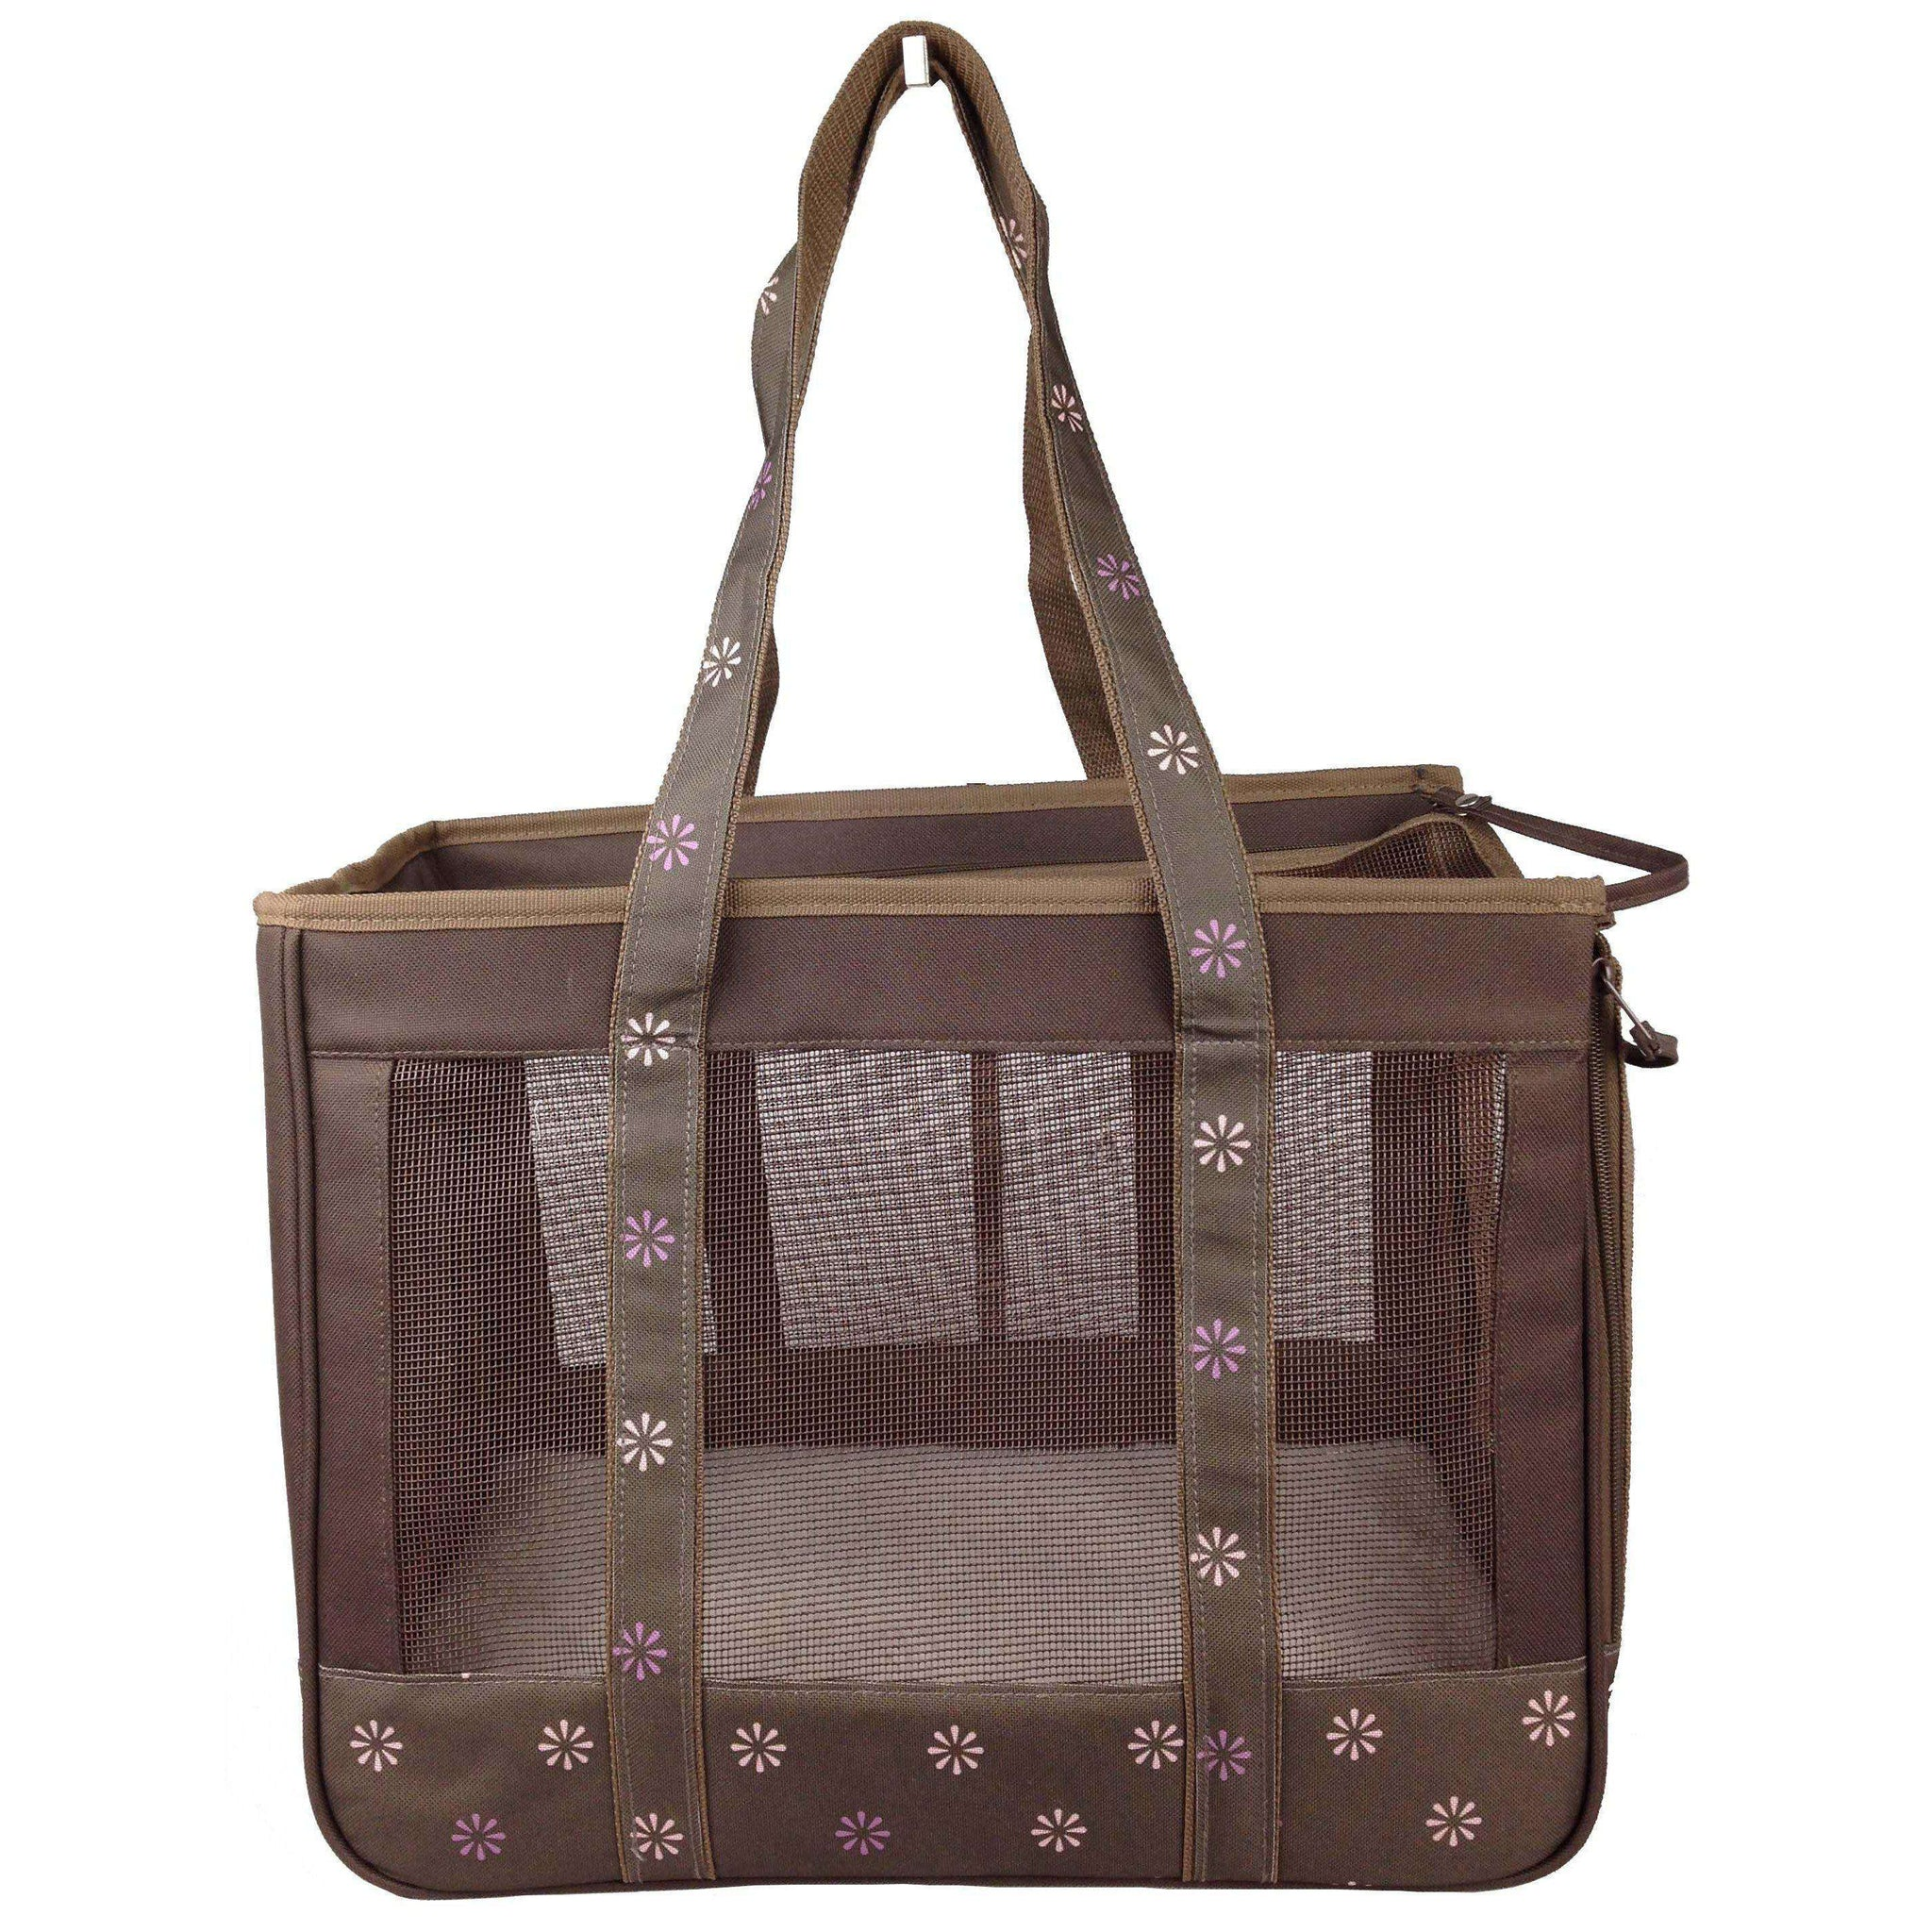 Surround View' Posh Fashion Pet Carrier- Cocoa Brown-Pet Life-DirtyFurClothing